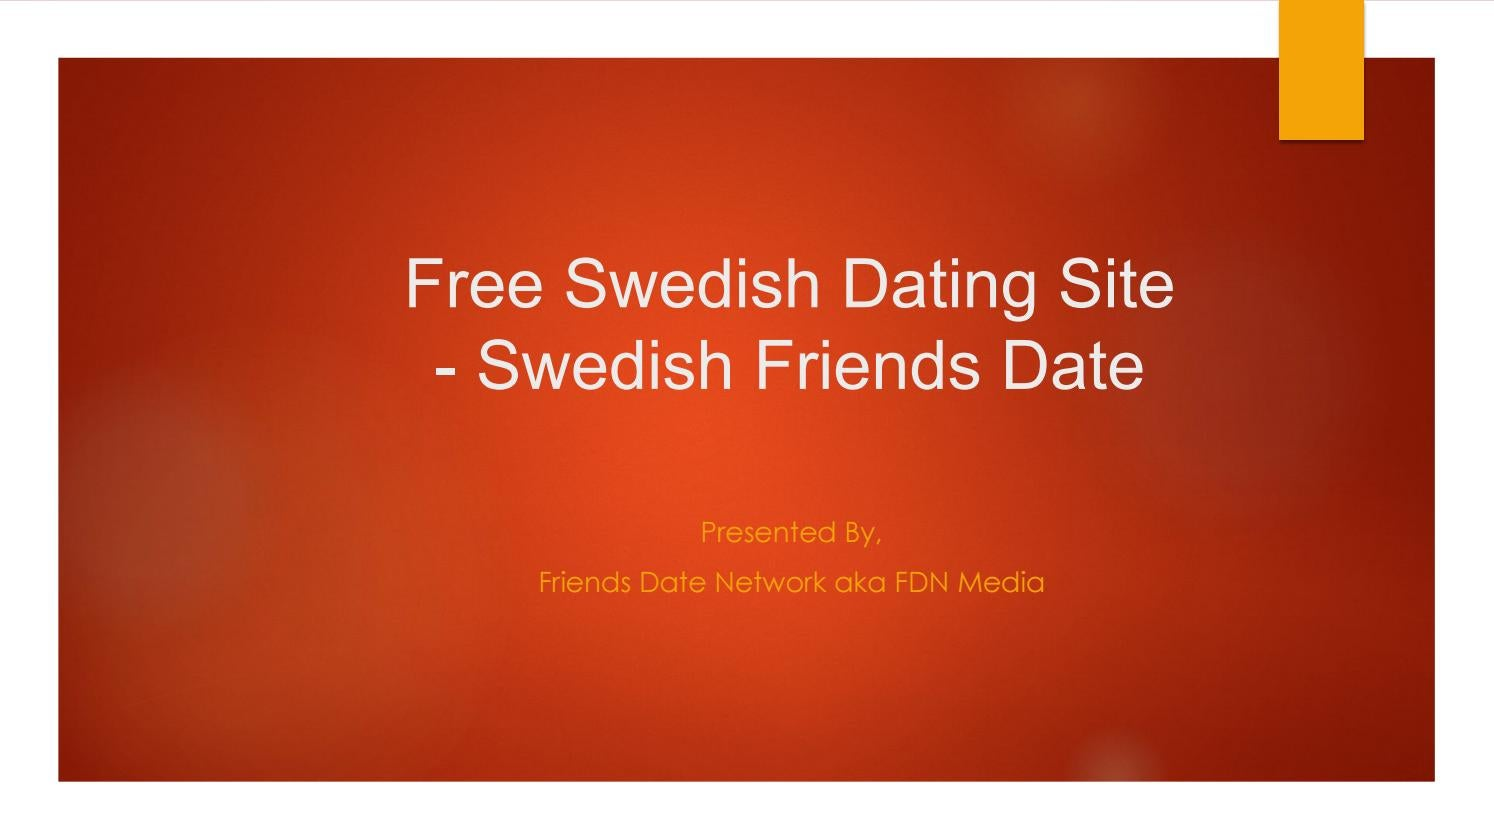 Swedish dating website